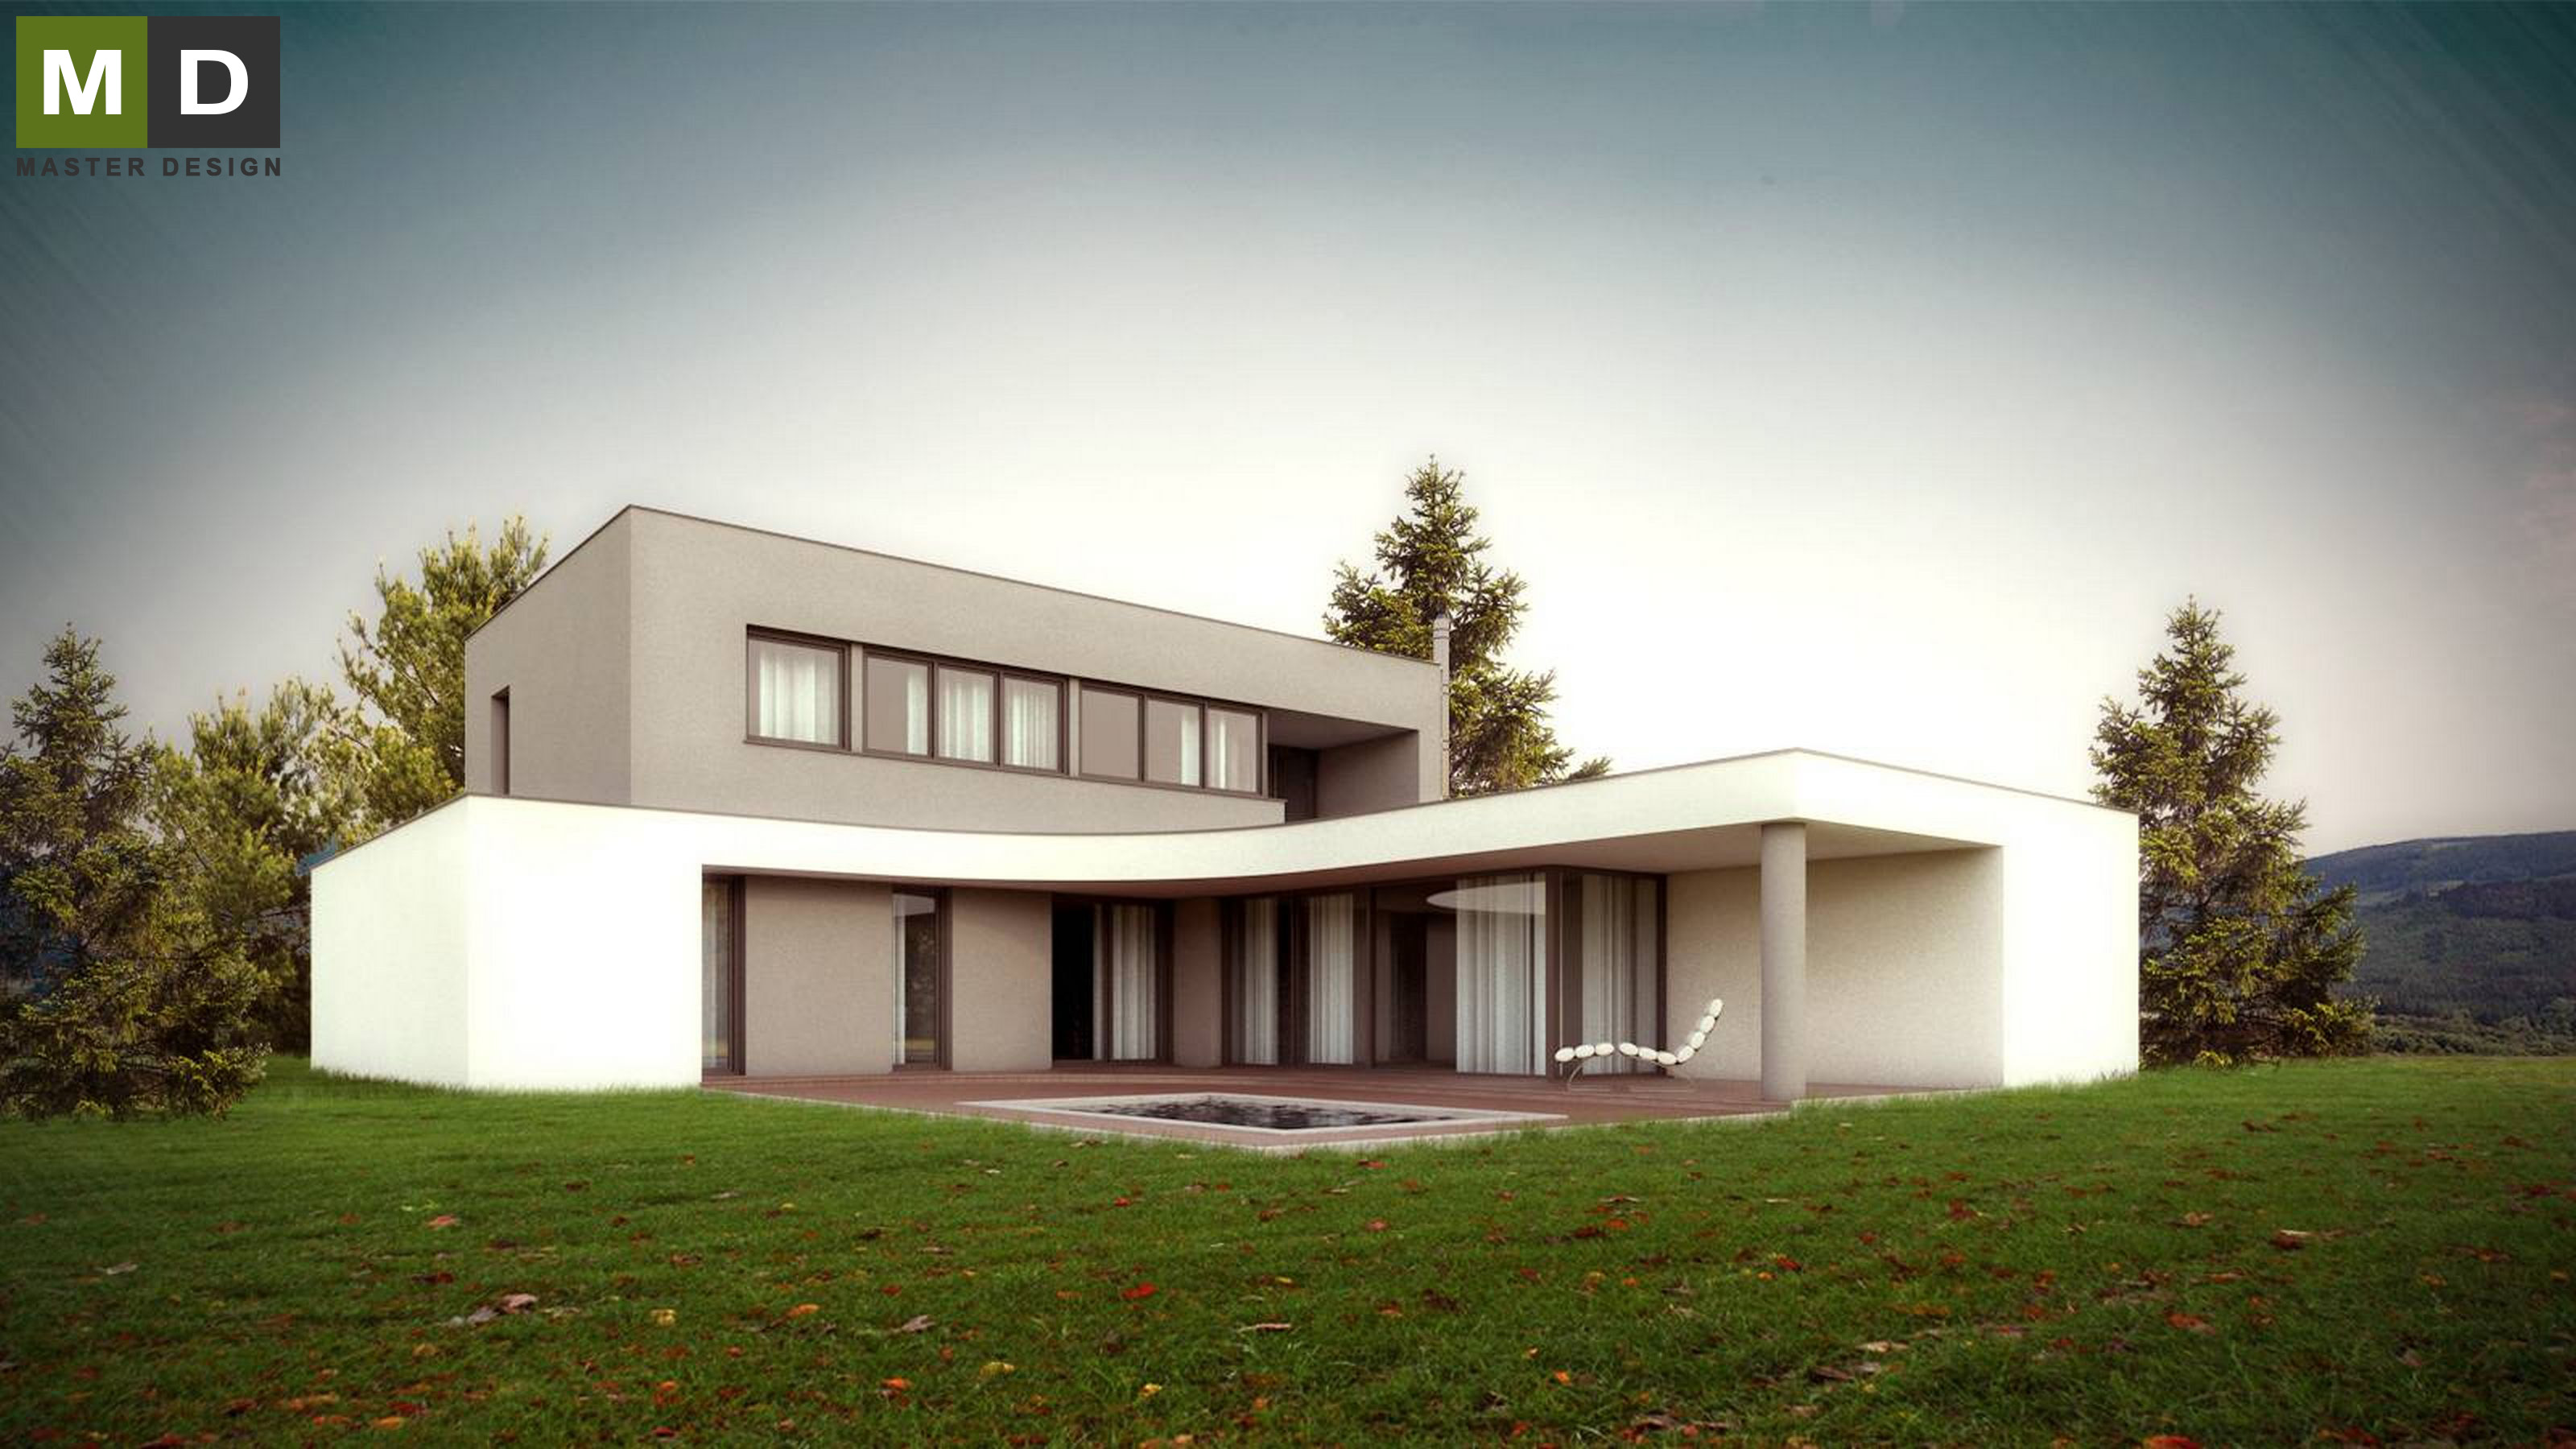 Attractive Home Design Zlín Part - 6: ... Luxury Low-energy L-shaped House With A Green Roof - Zlín - Vizualizace  ...